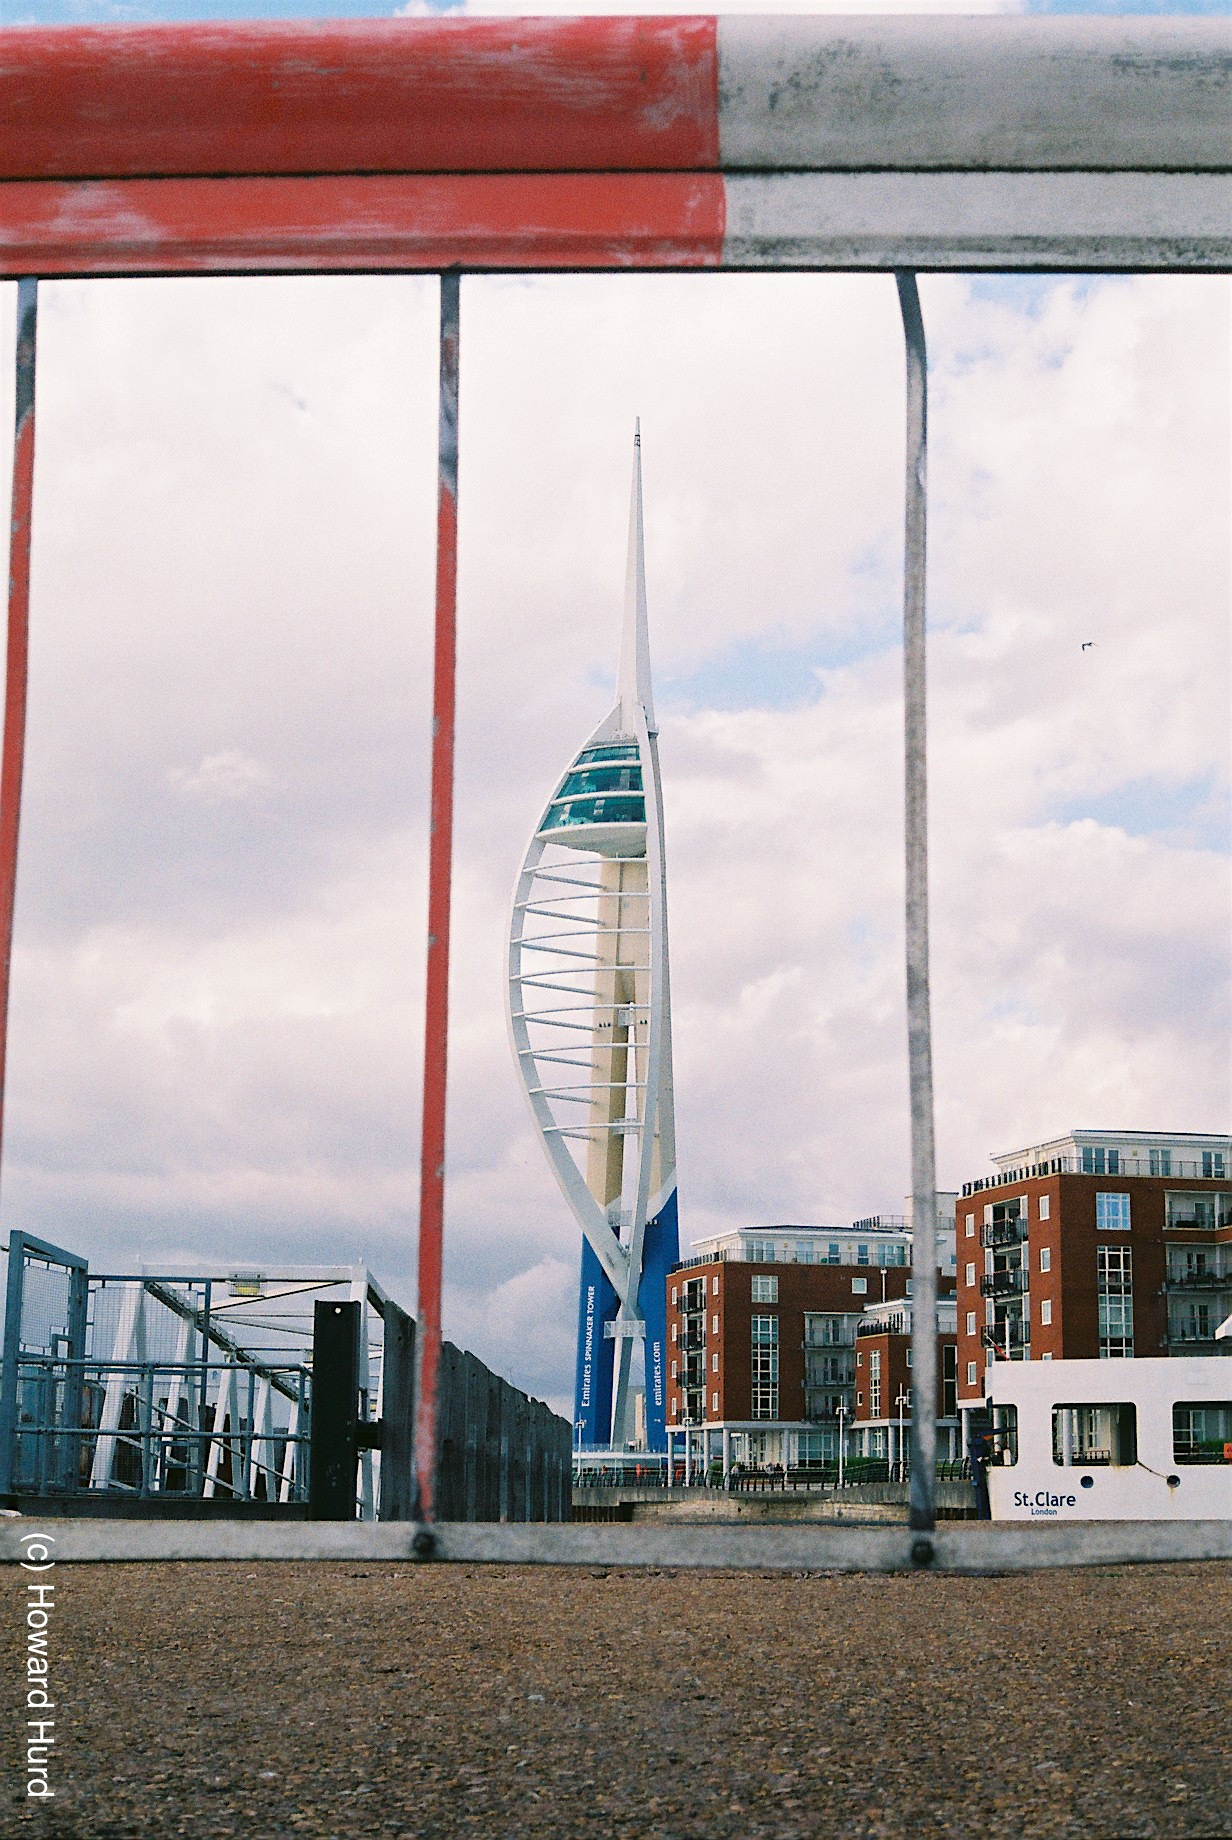 View of the Spinnaker Tower, Portsmouth, UK - taken with Fed4 and Agfa VistaPlus at ISO200